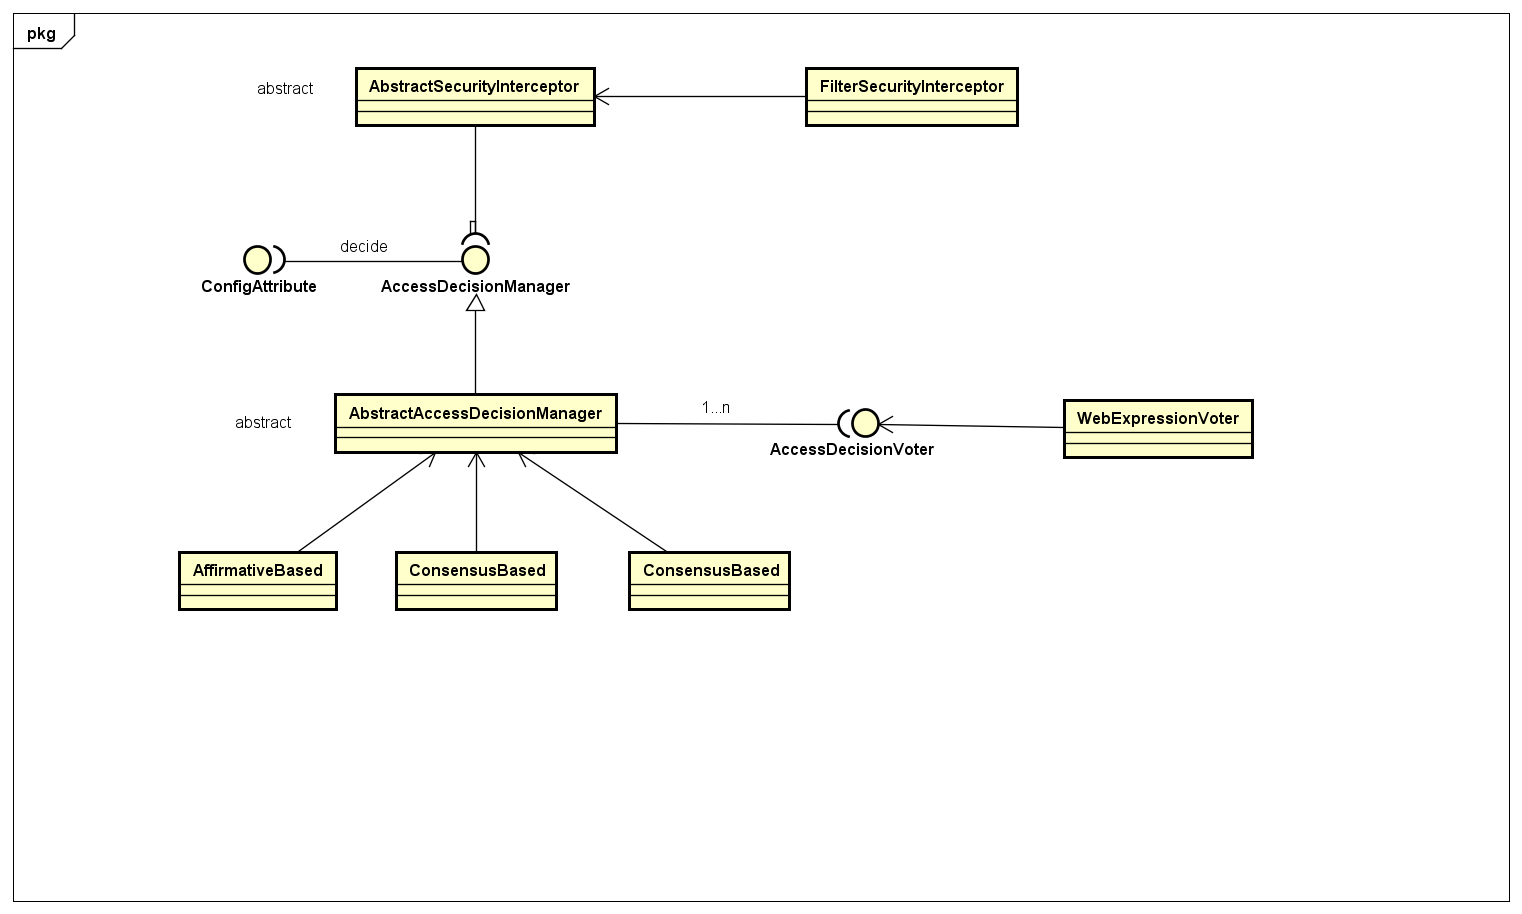 http://dandandeshangni.oss-cn-beijing.aliyuncs.com/github/Spring%20Security/security-authentication-Diagram.png